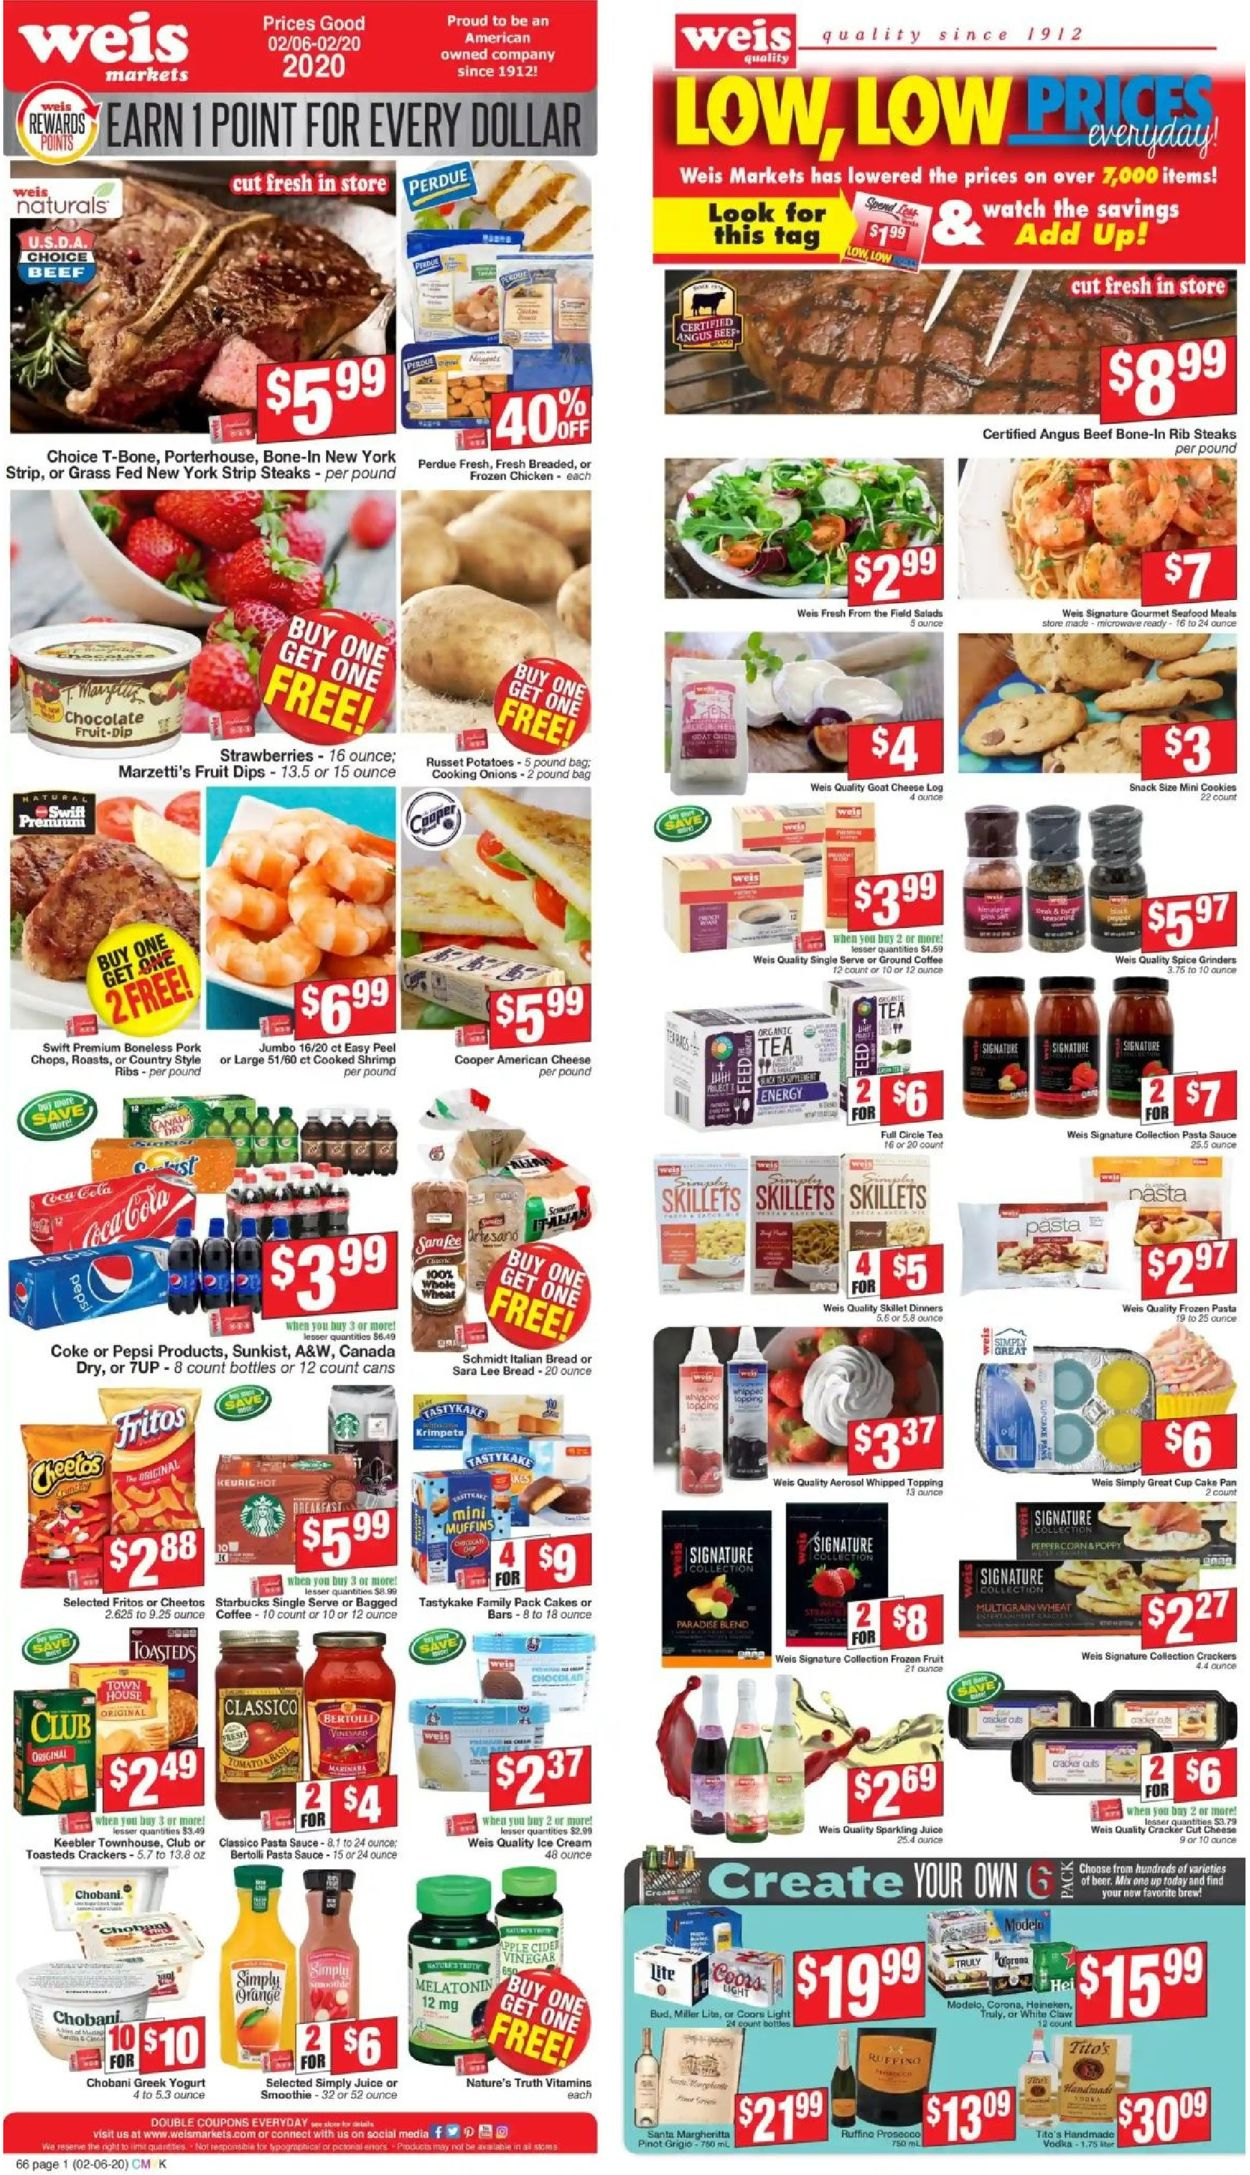 Weis Current Weekly Ad 02 06 02 20 2020 Frequent Ads Com